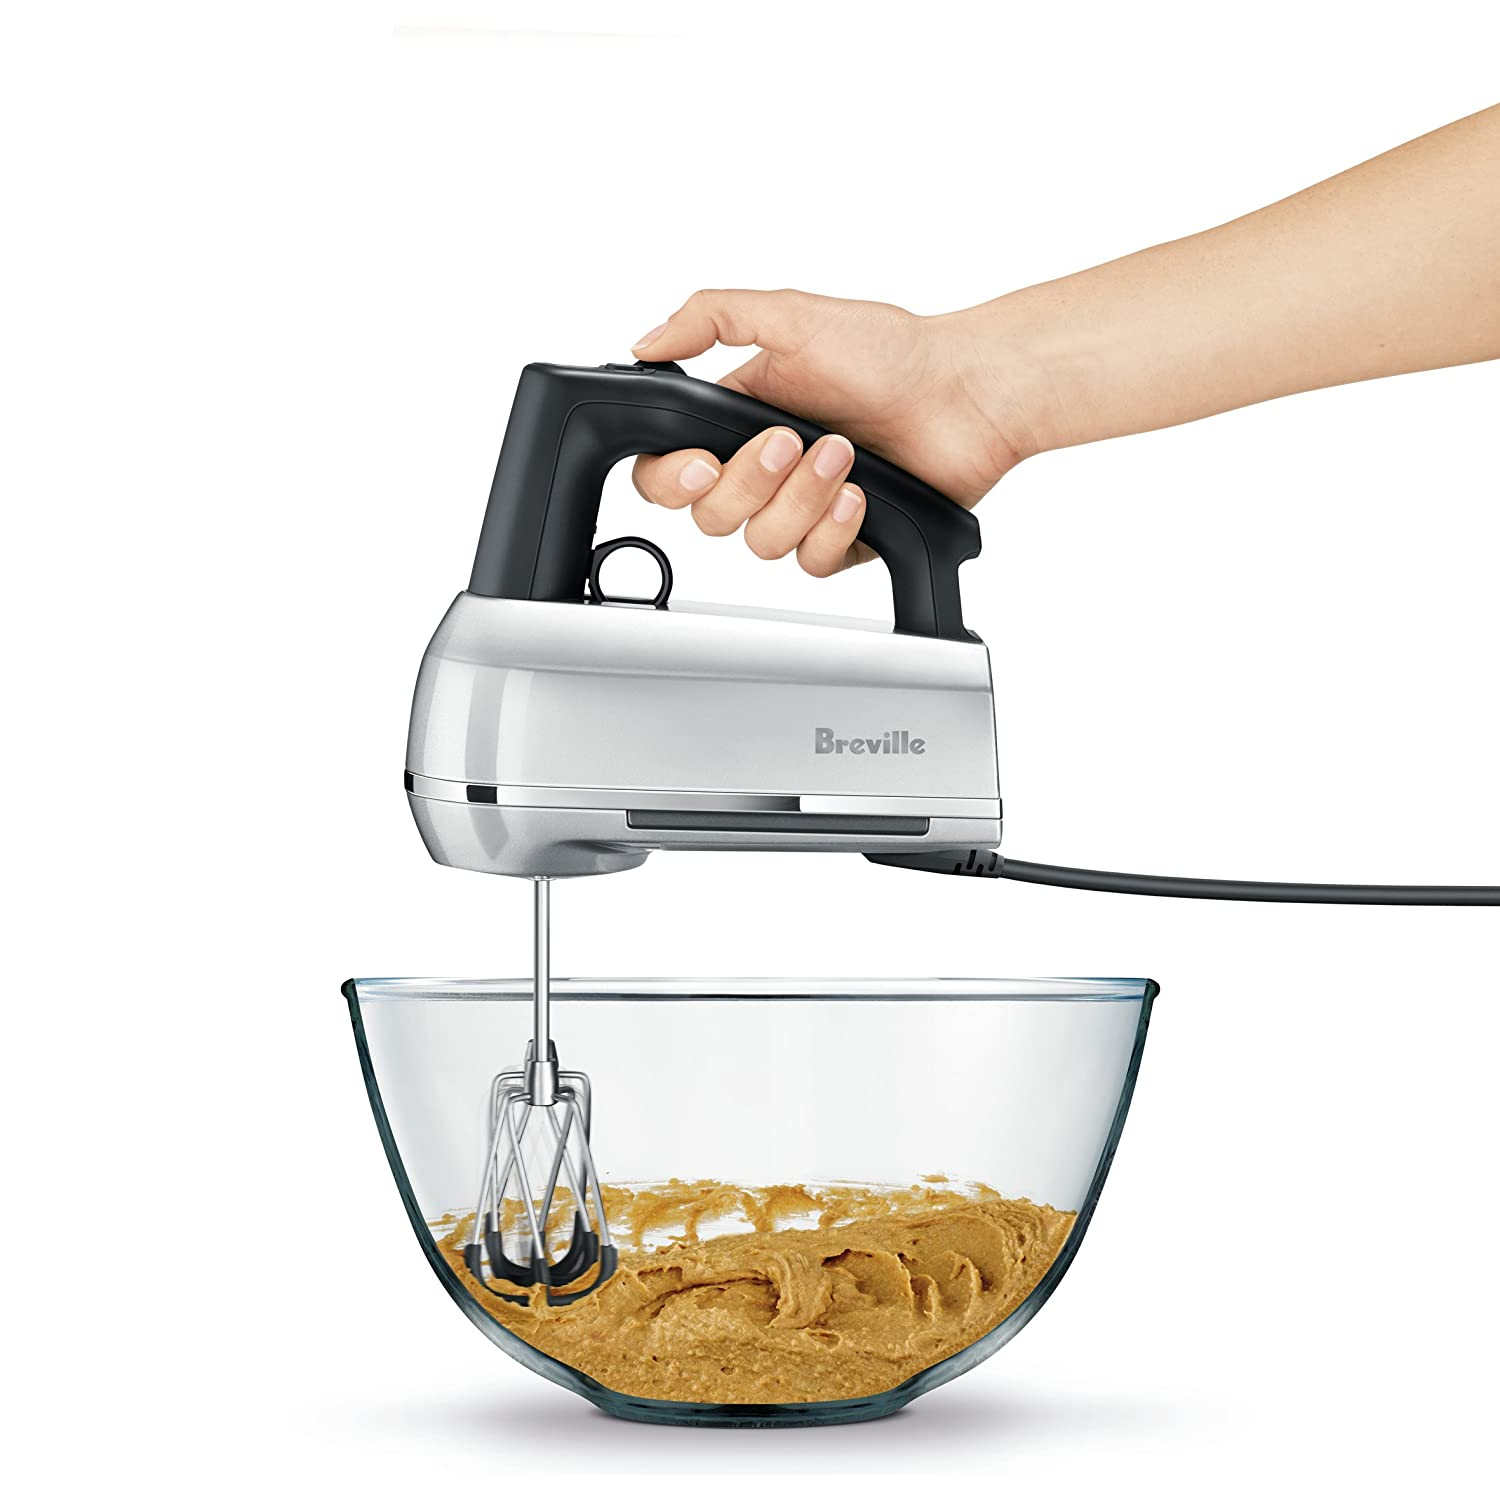 Breville hand mixer review